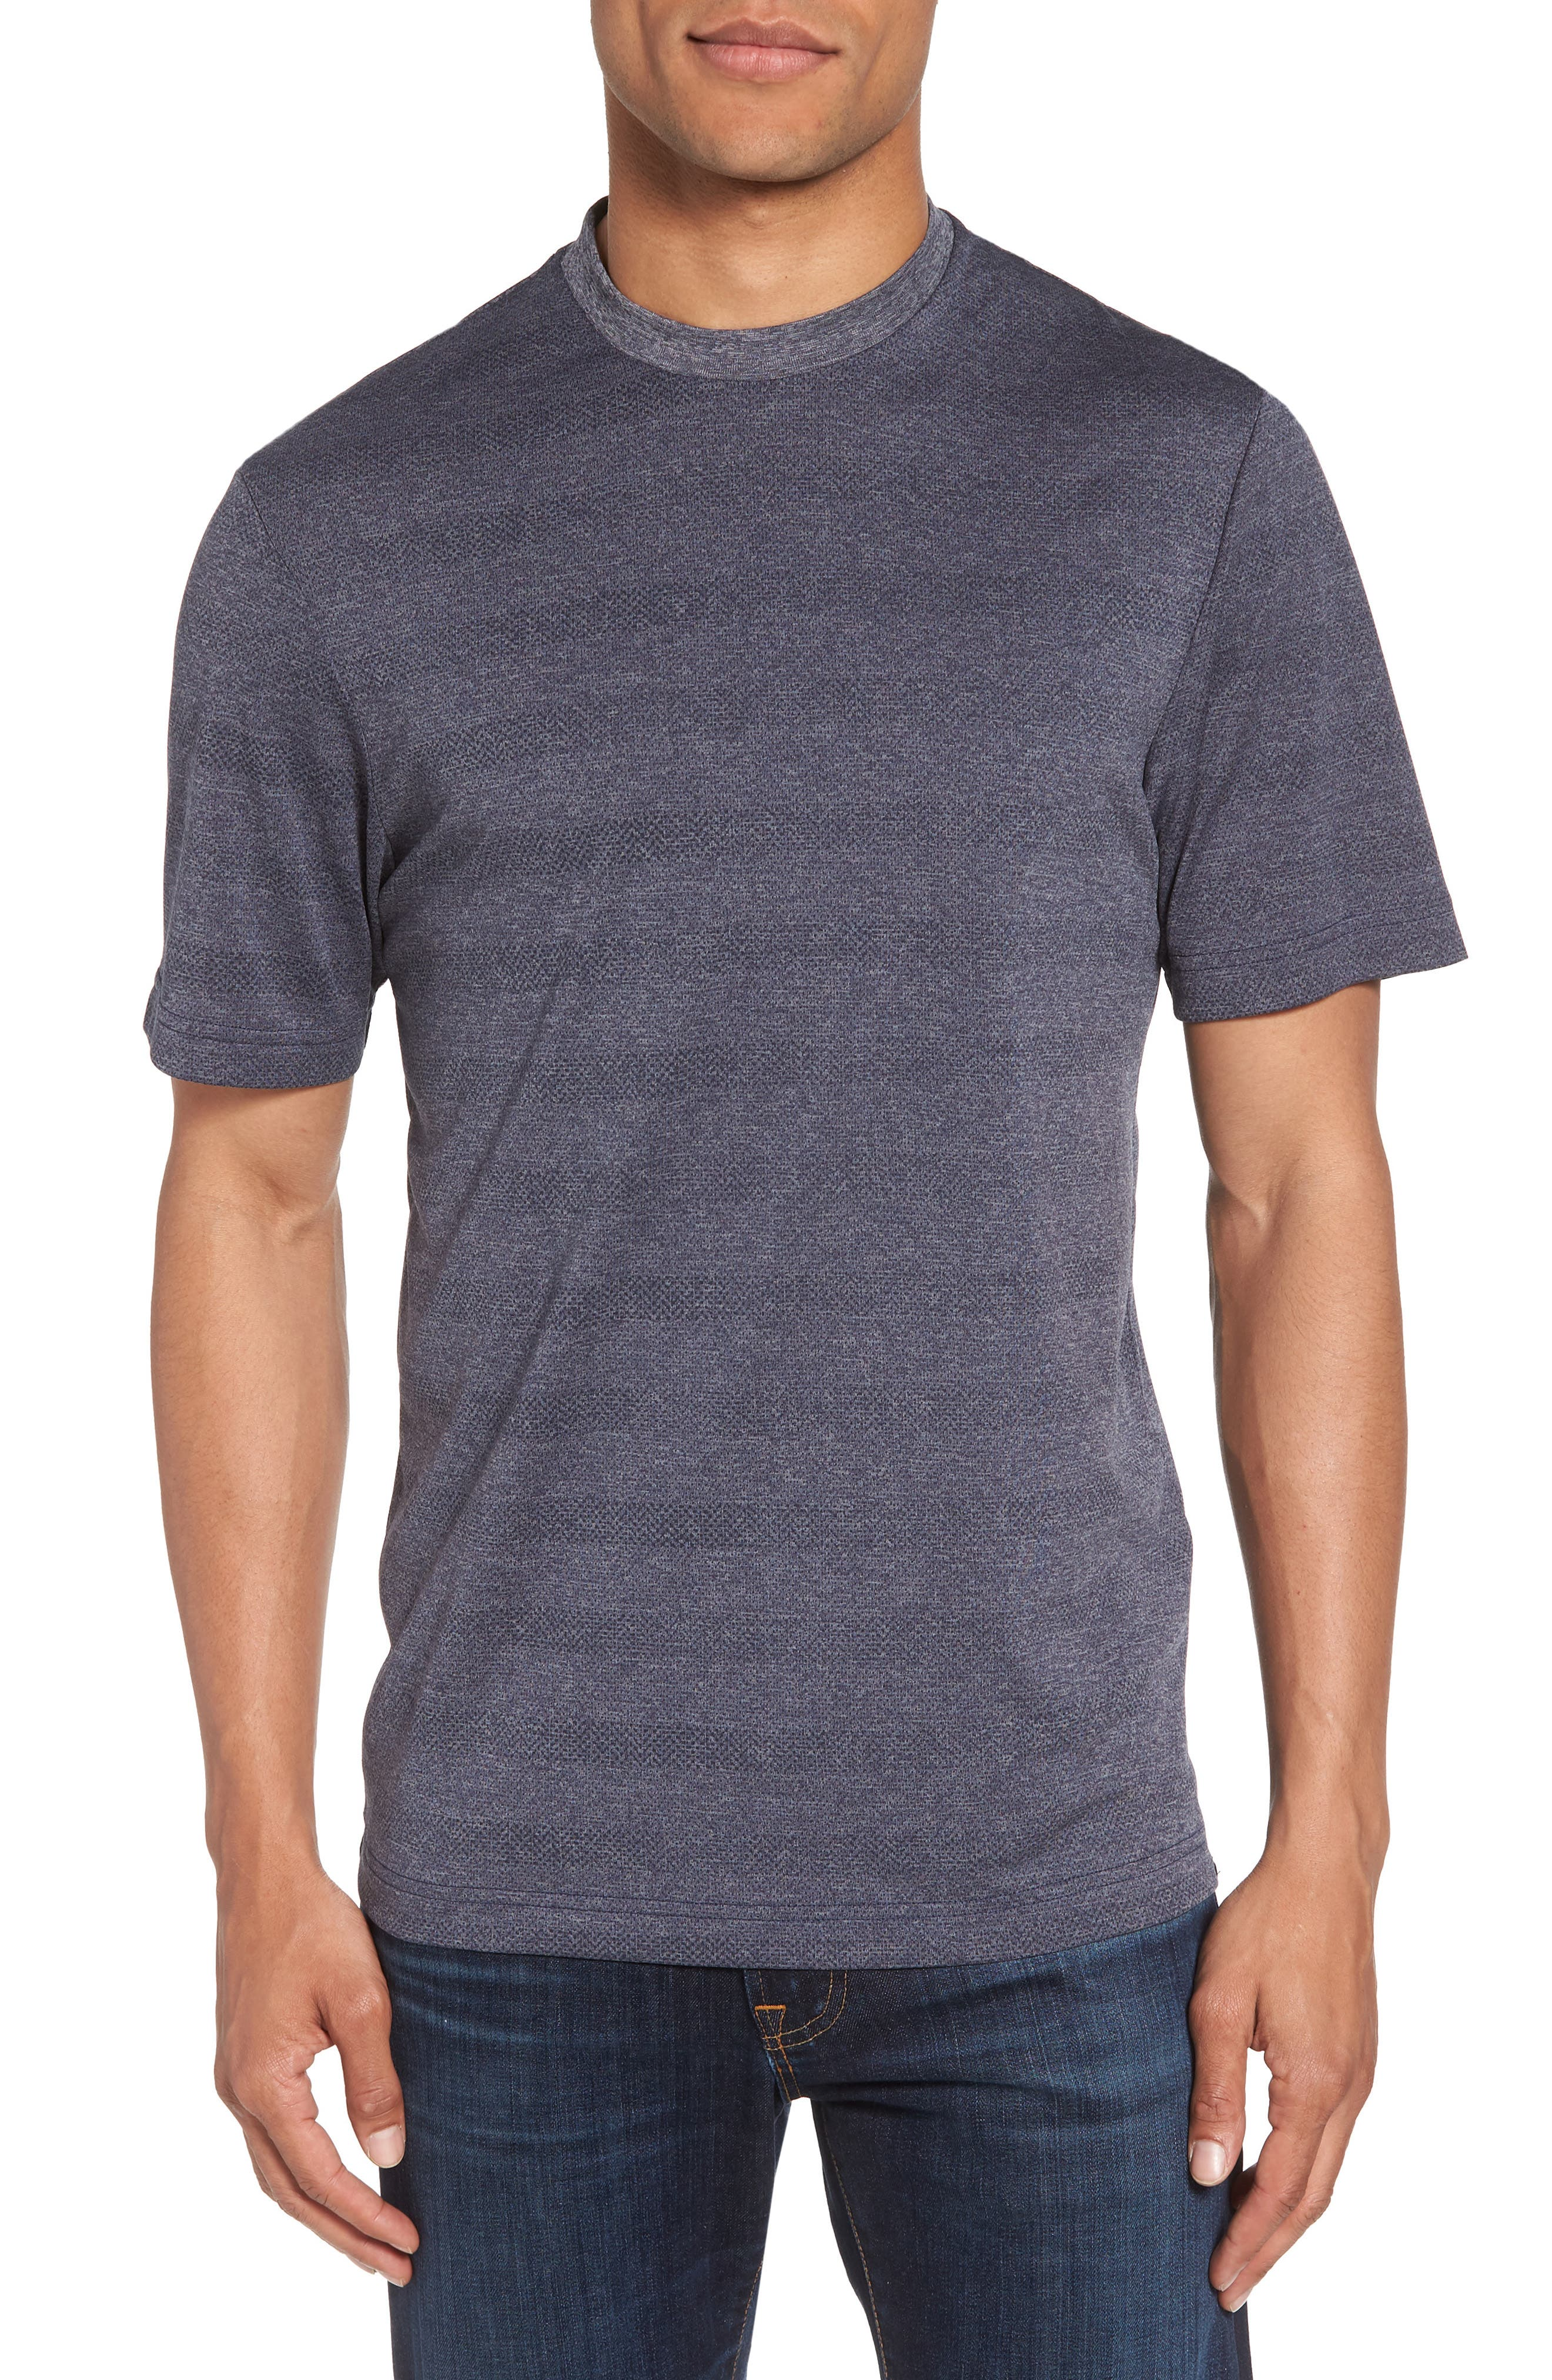 Upshift T-Shirt,                         Main,                         color, HEATHER GRIFFIN